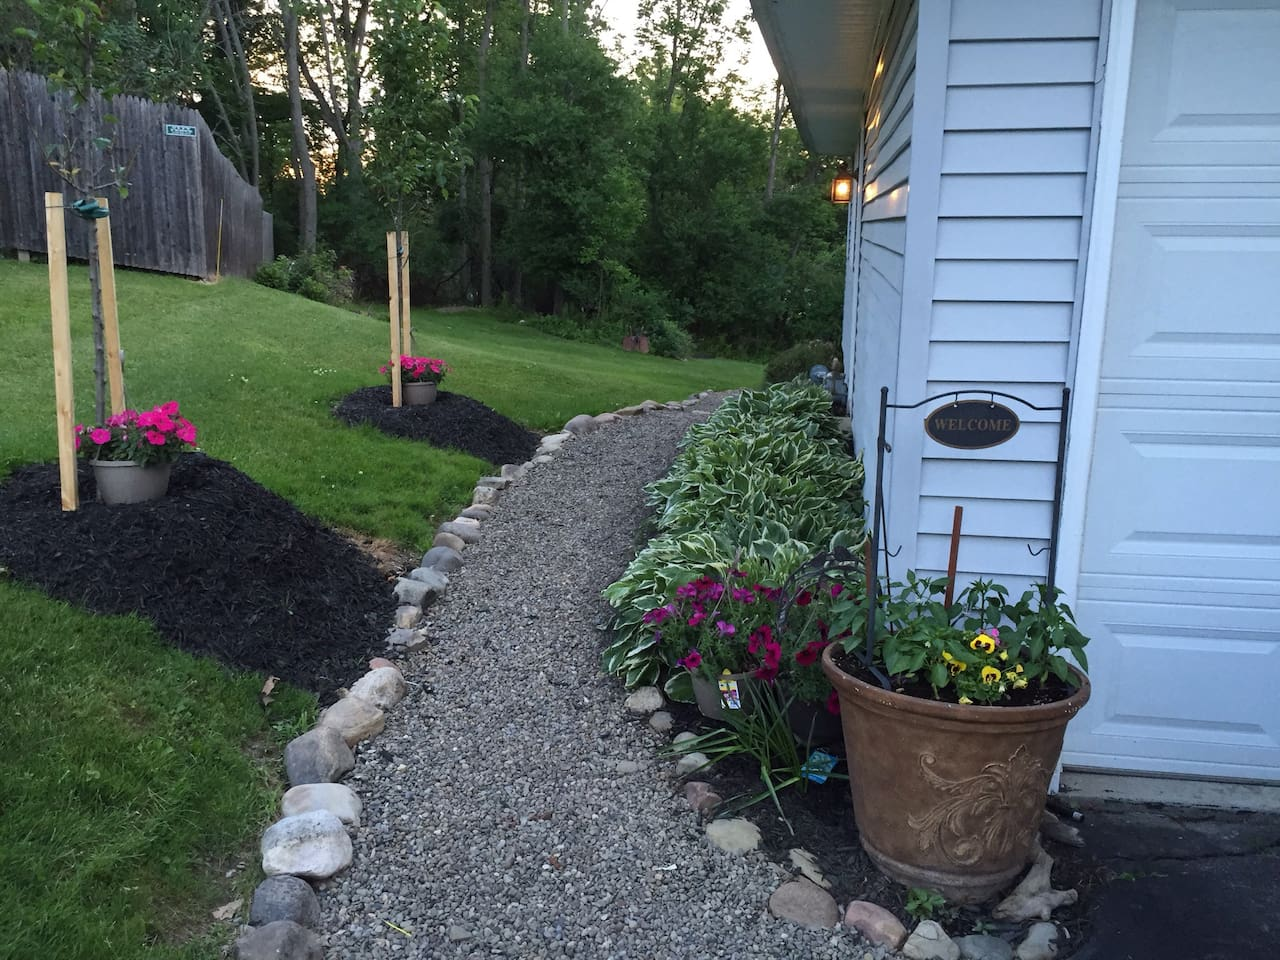 Stepping stone path along side house to your private rear entrance.